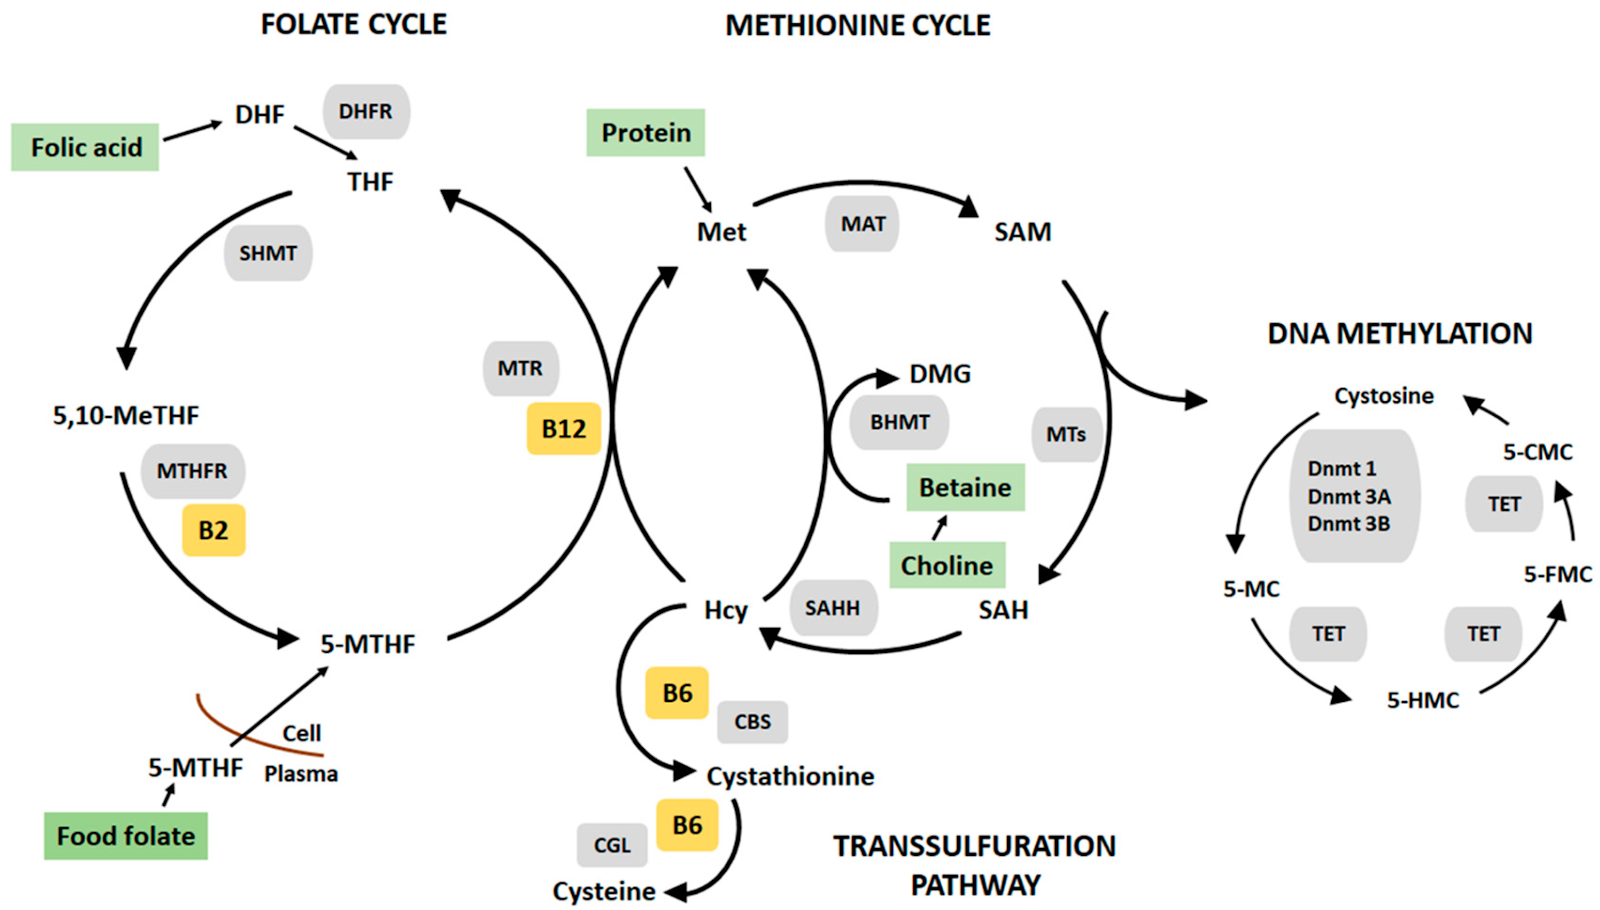 Folate and methionine cycles, which involves the MTHFR enzyme